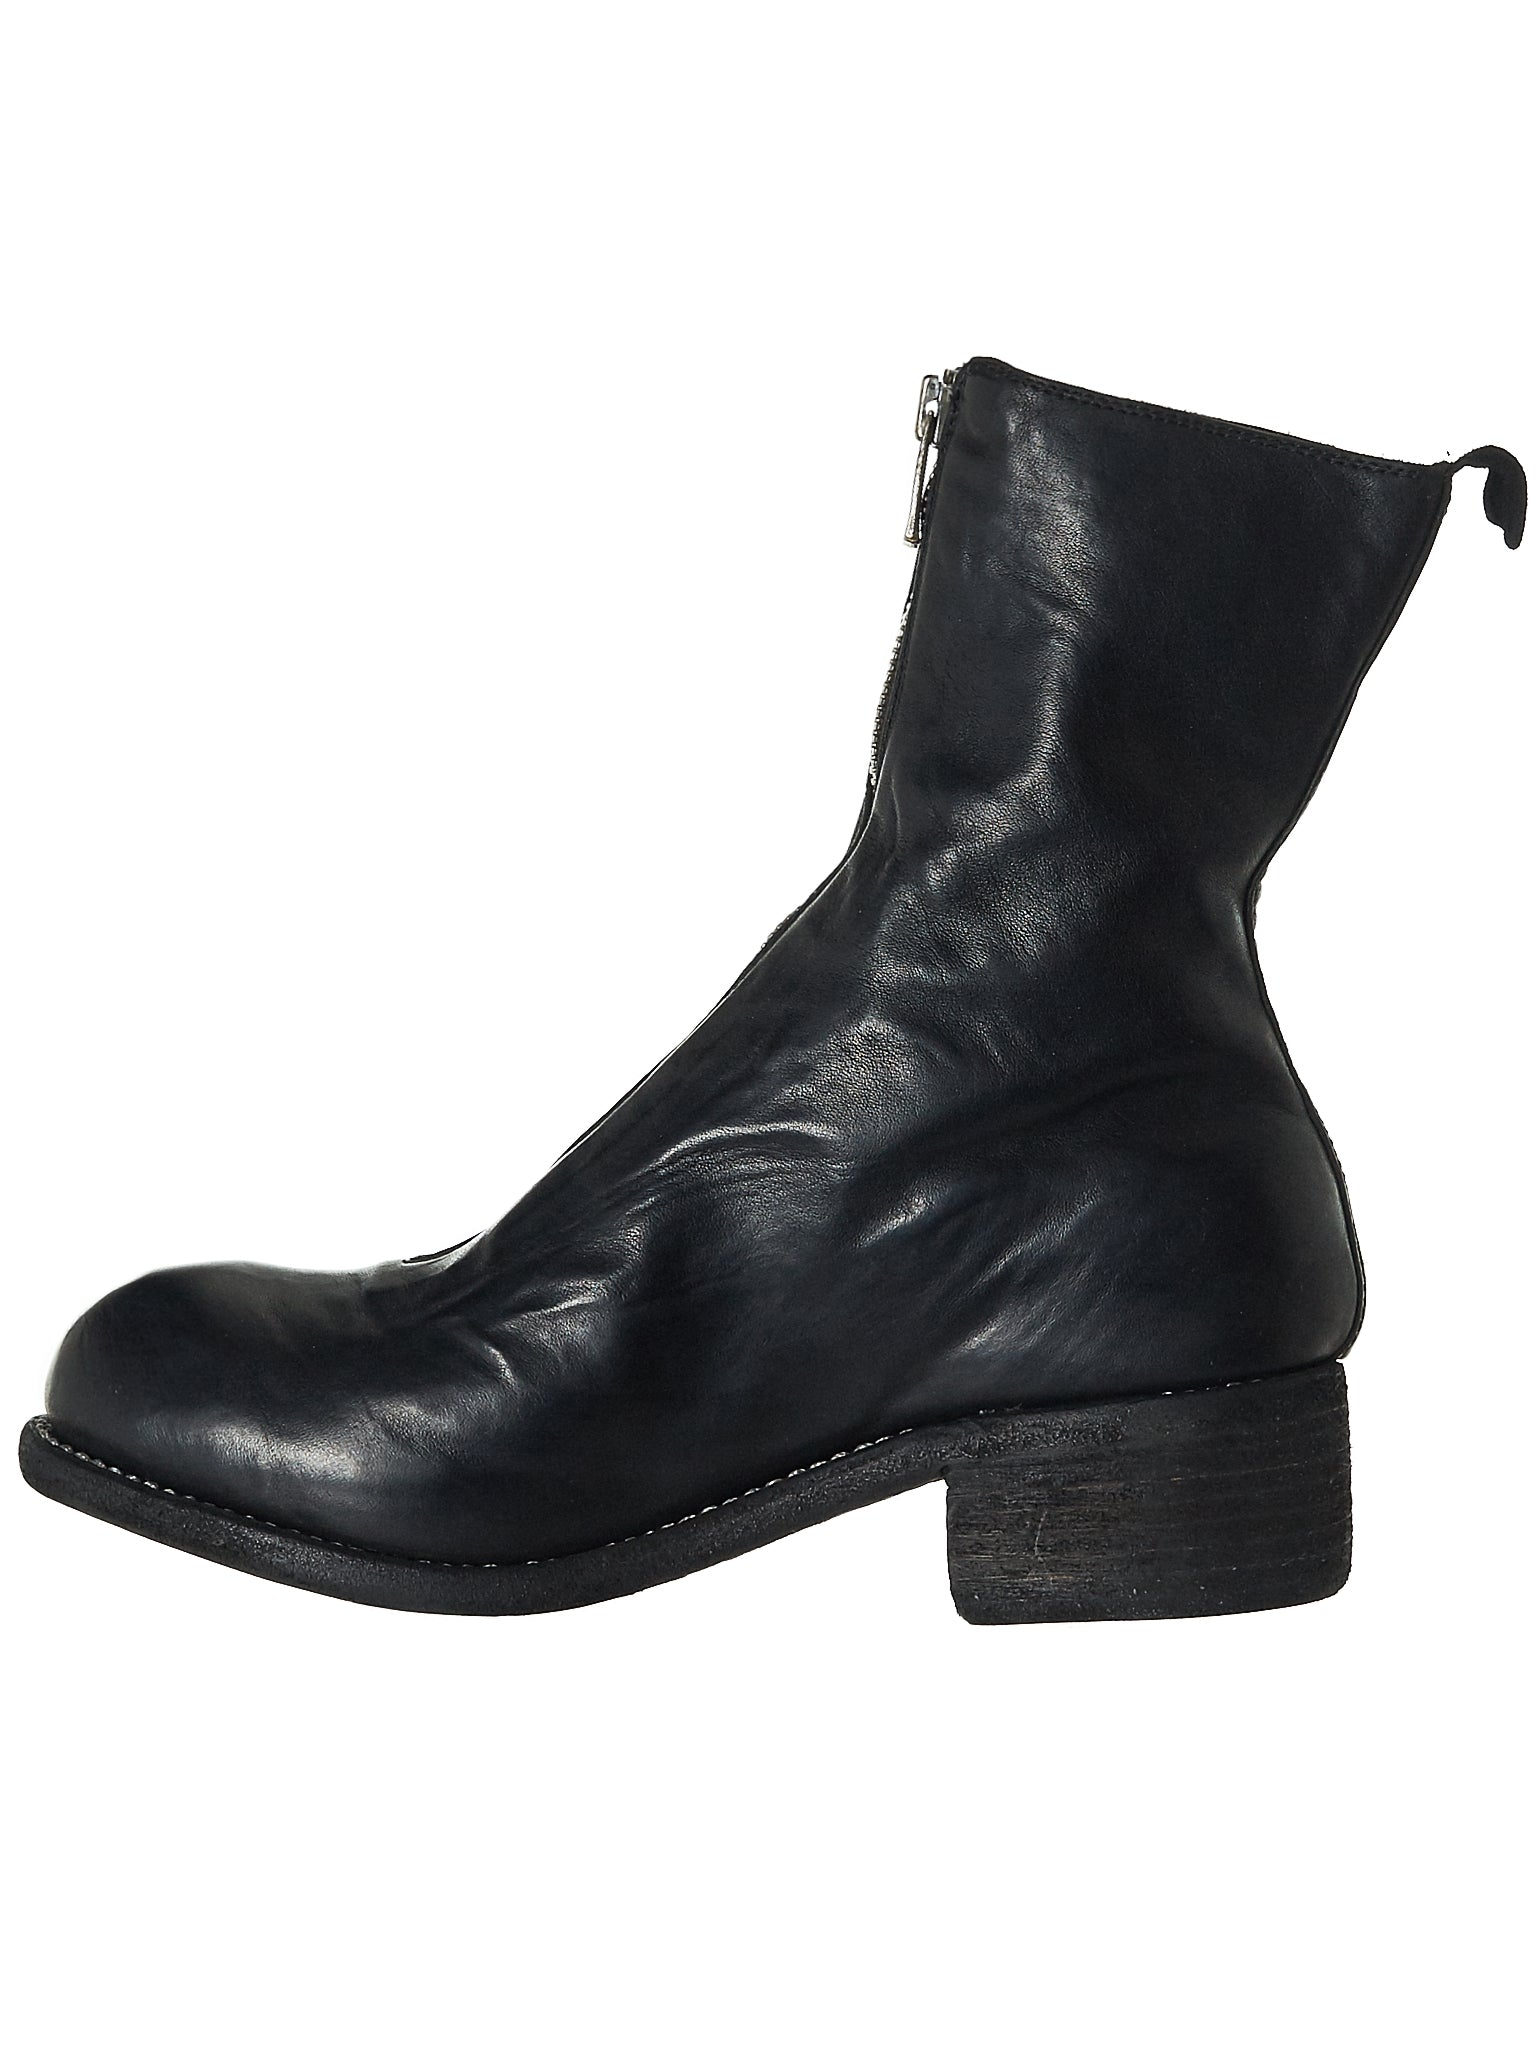 Object-Dyed Leather Boot (PL2-SOFT-HORSE-FG-BLKT)